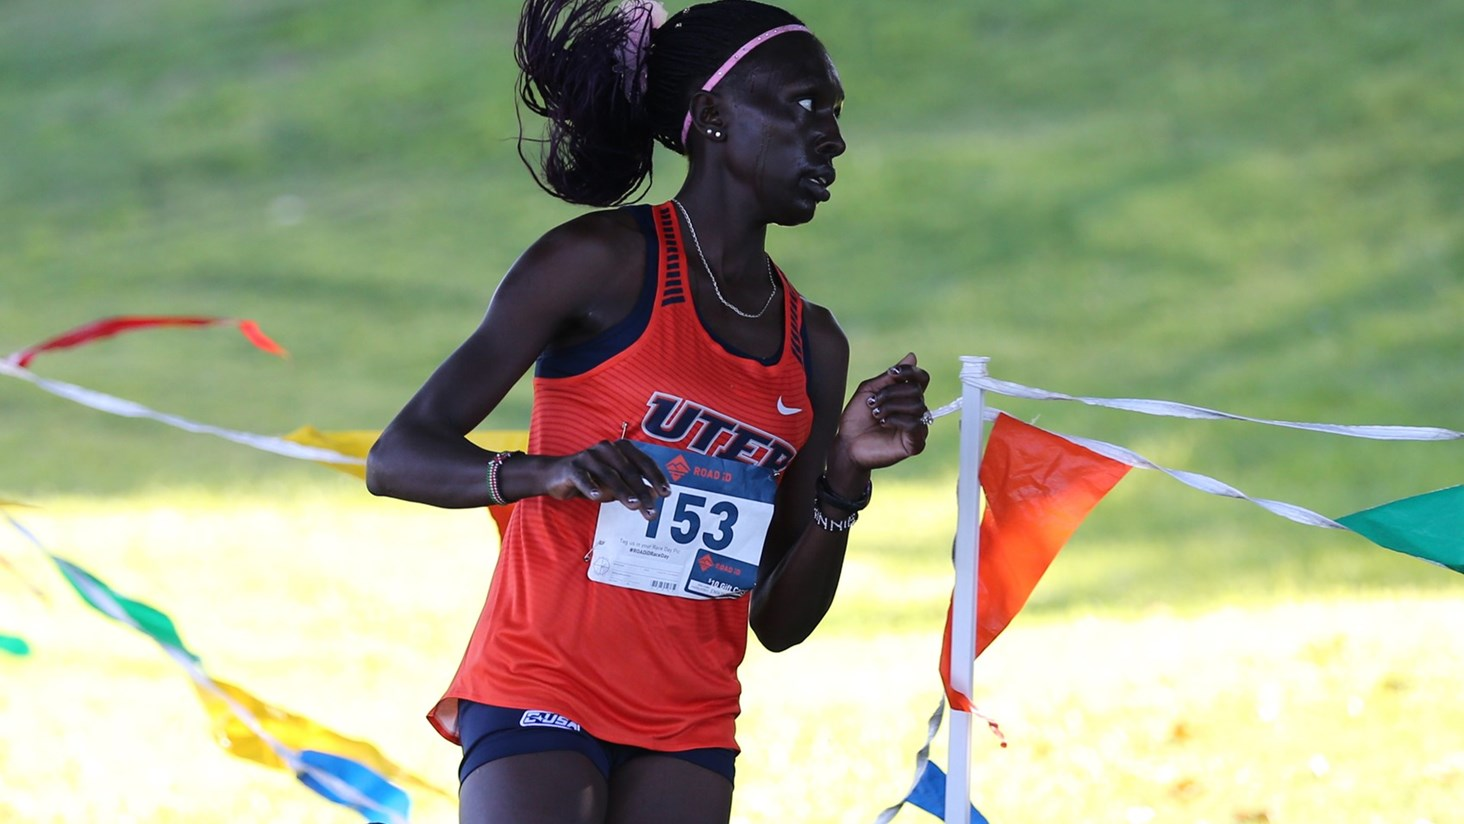 Miners Set to Compete at the NCAA Championships